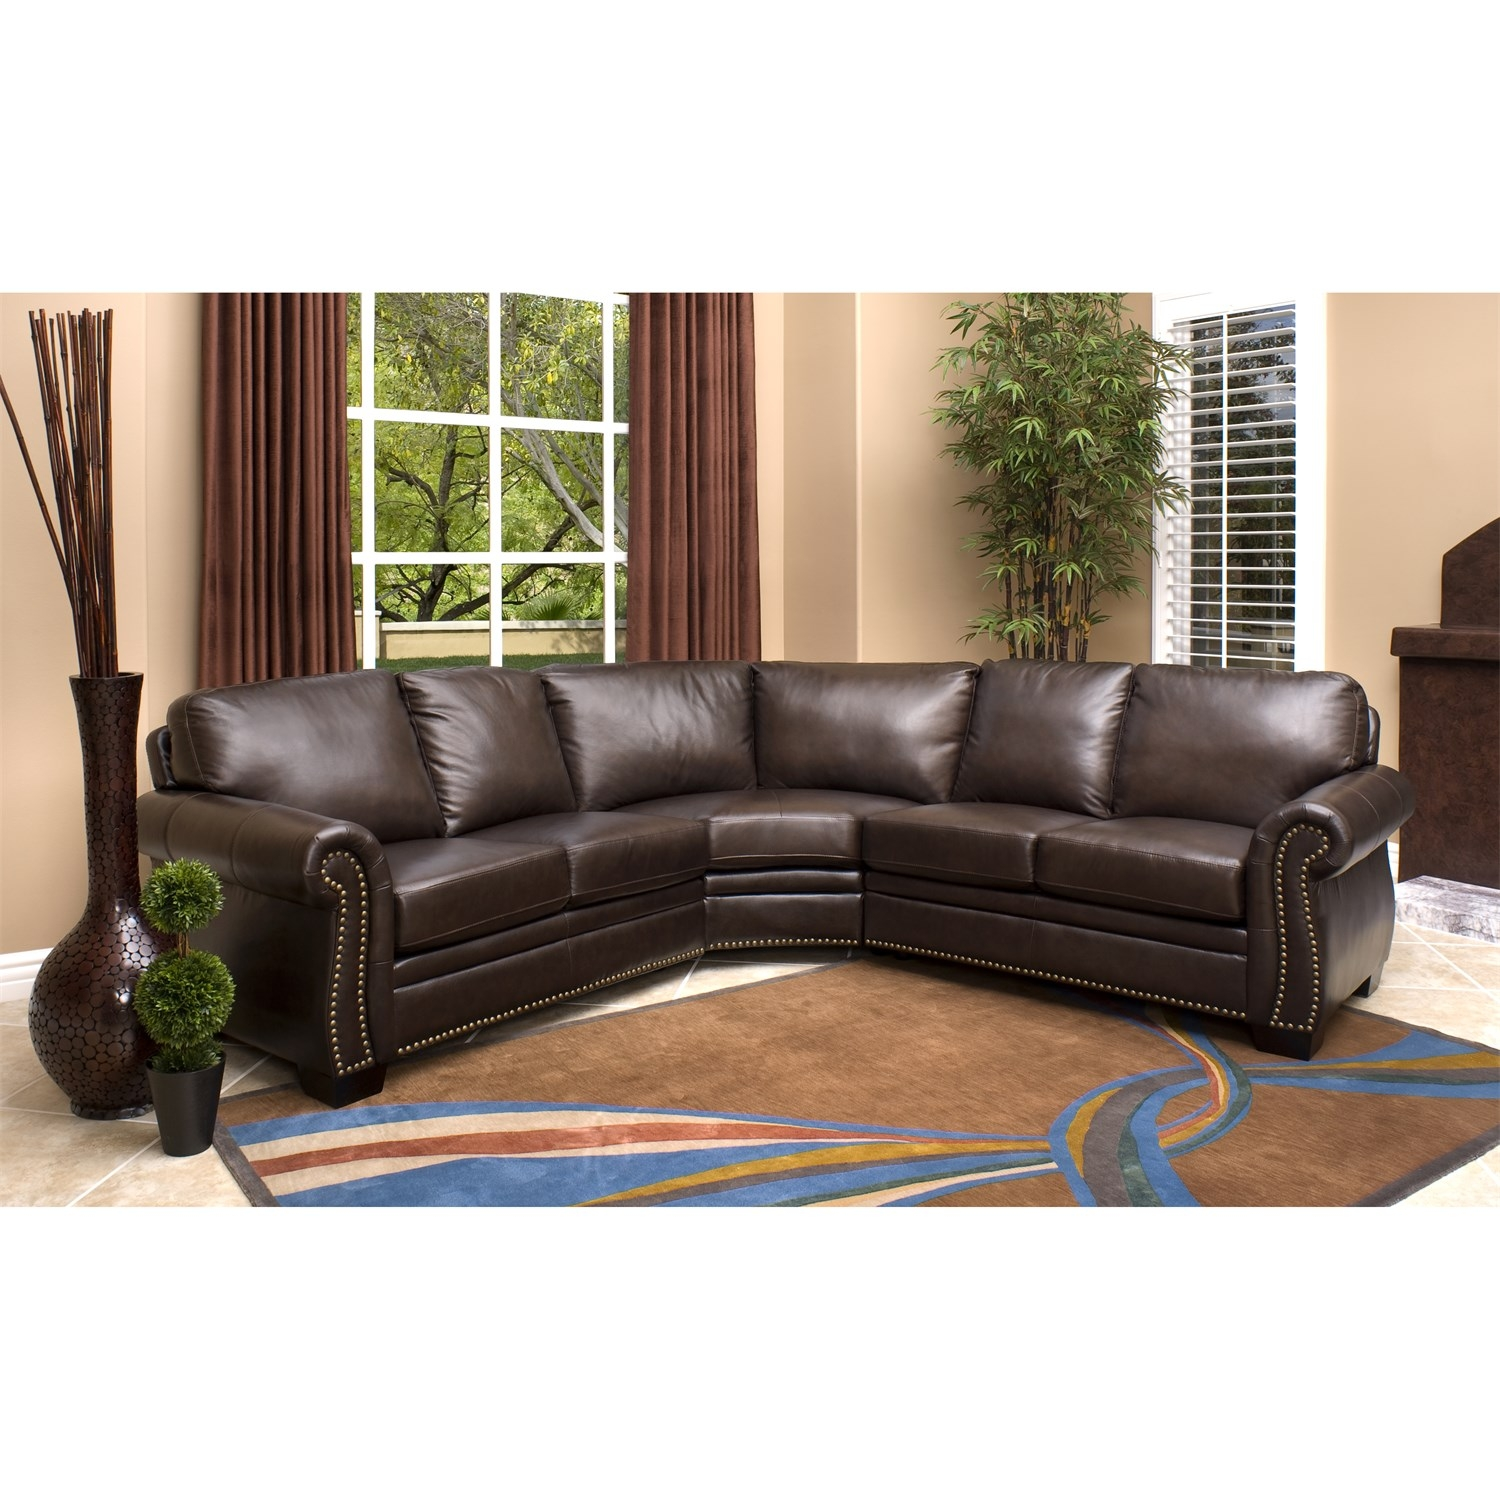 Abson Living Ci N410 Brn Oxford Italian Leather Sectional Sofa Inside Abbyson Sectional Sofa (View 4 of 15)